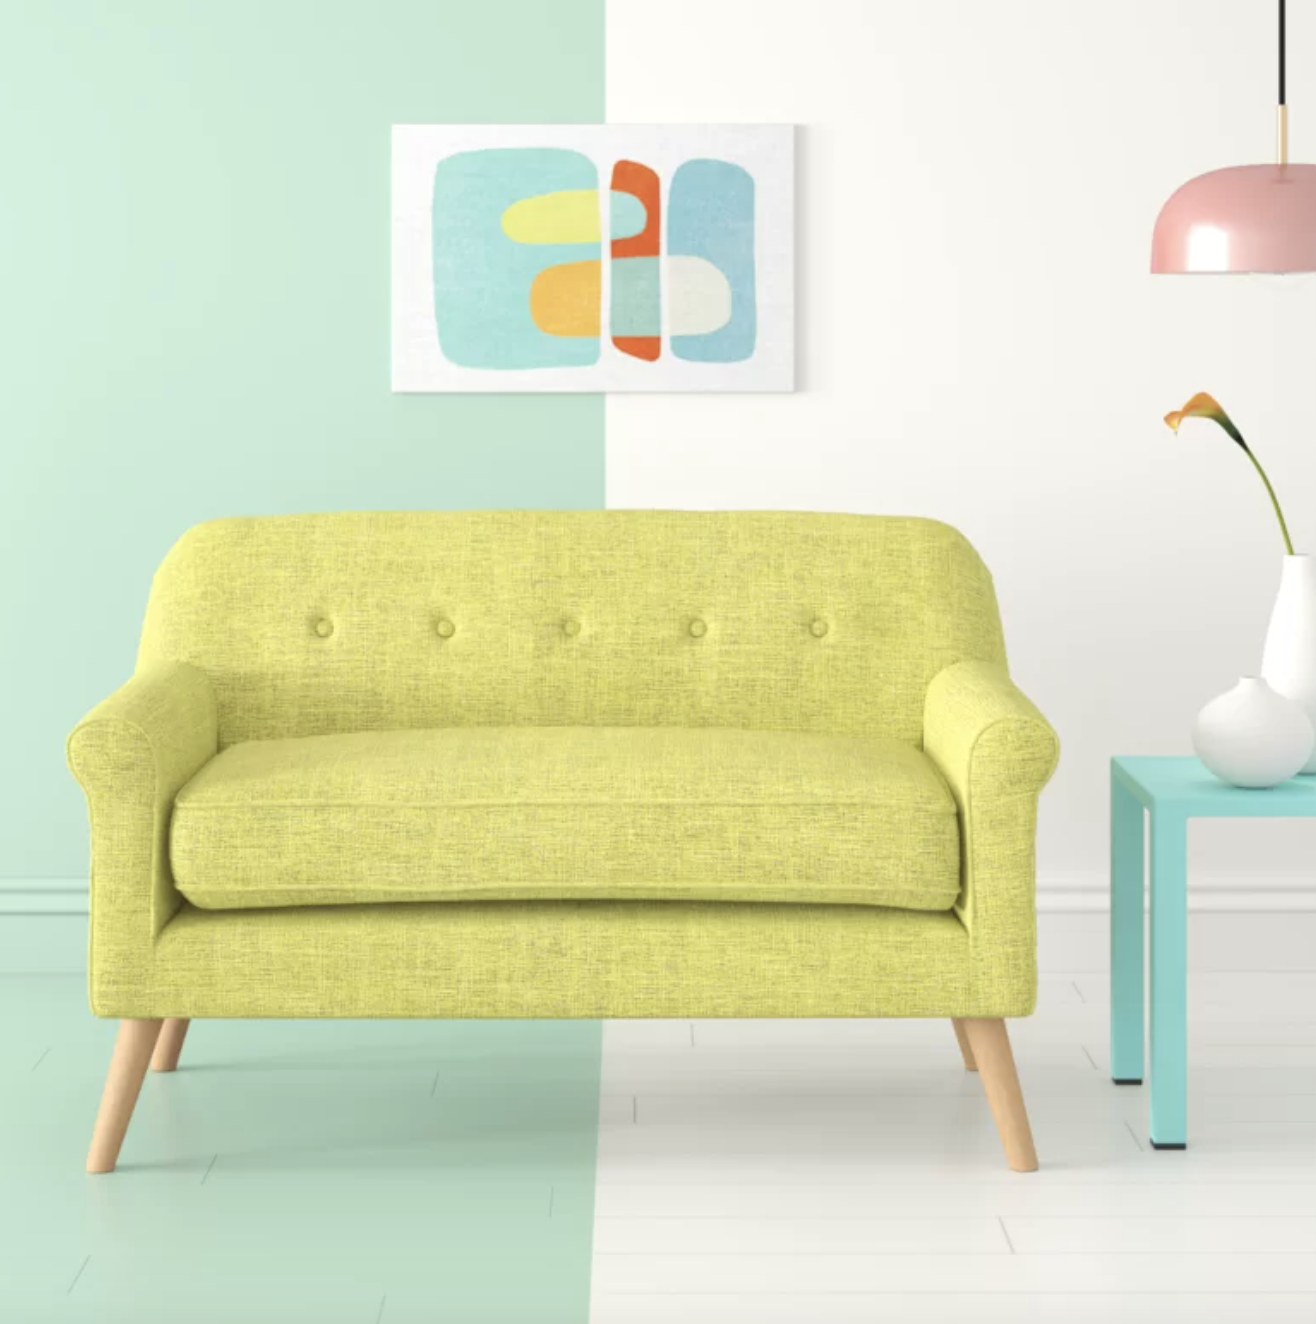 Neon yellow flared arm loveseat on a half green, half white floor next to a light blue table